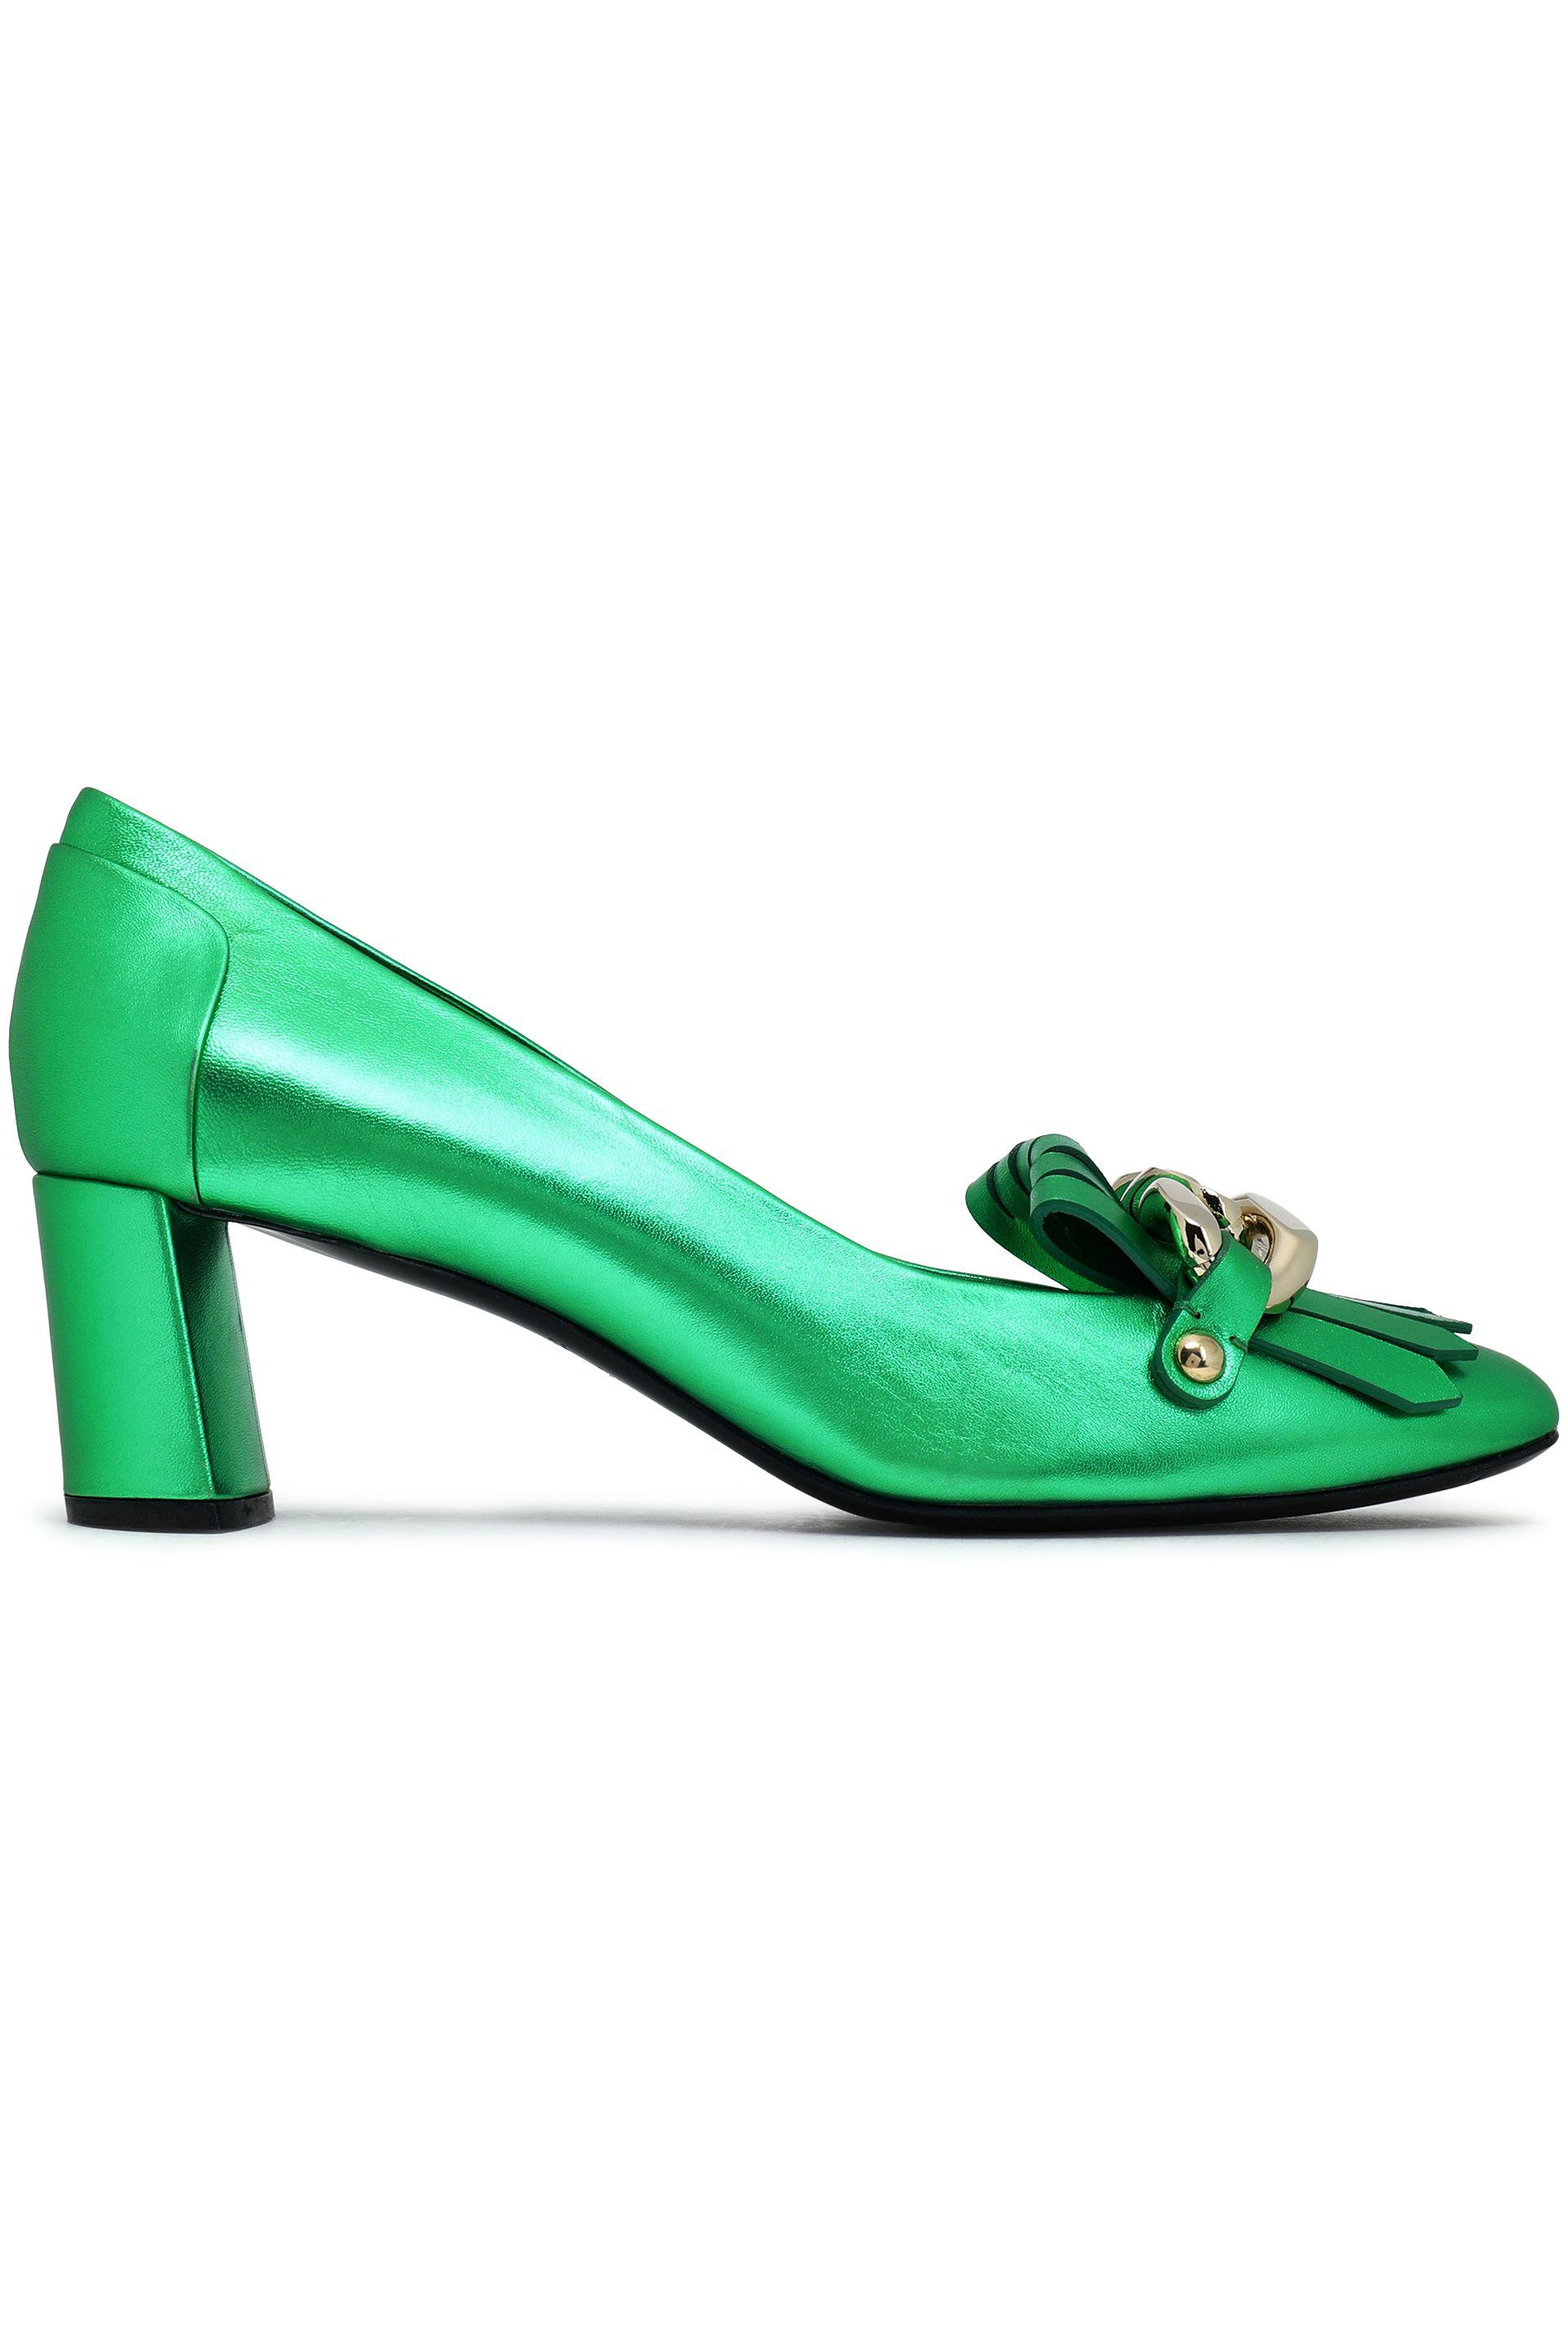 Casadei Woman Chain-embellished Fringed Metallic Leather Pumps Bright Green Size 36 Casadei z73ge